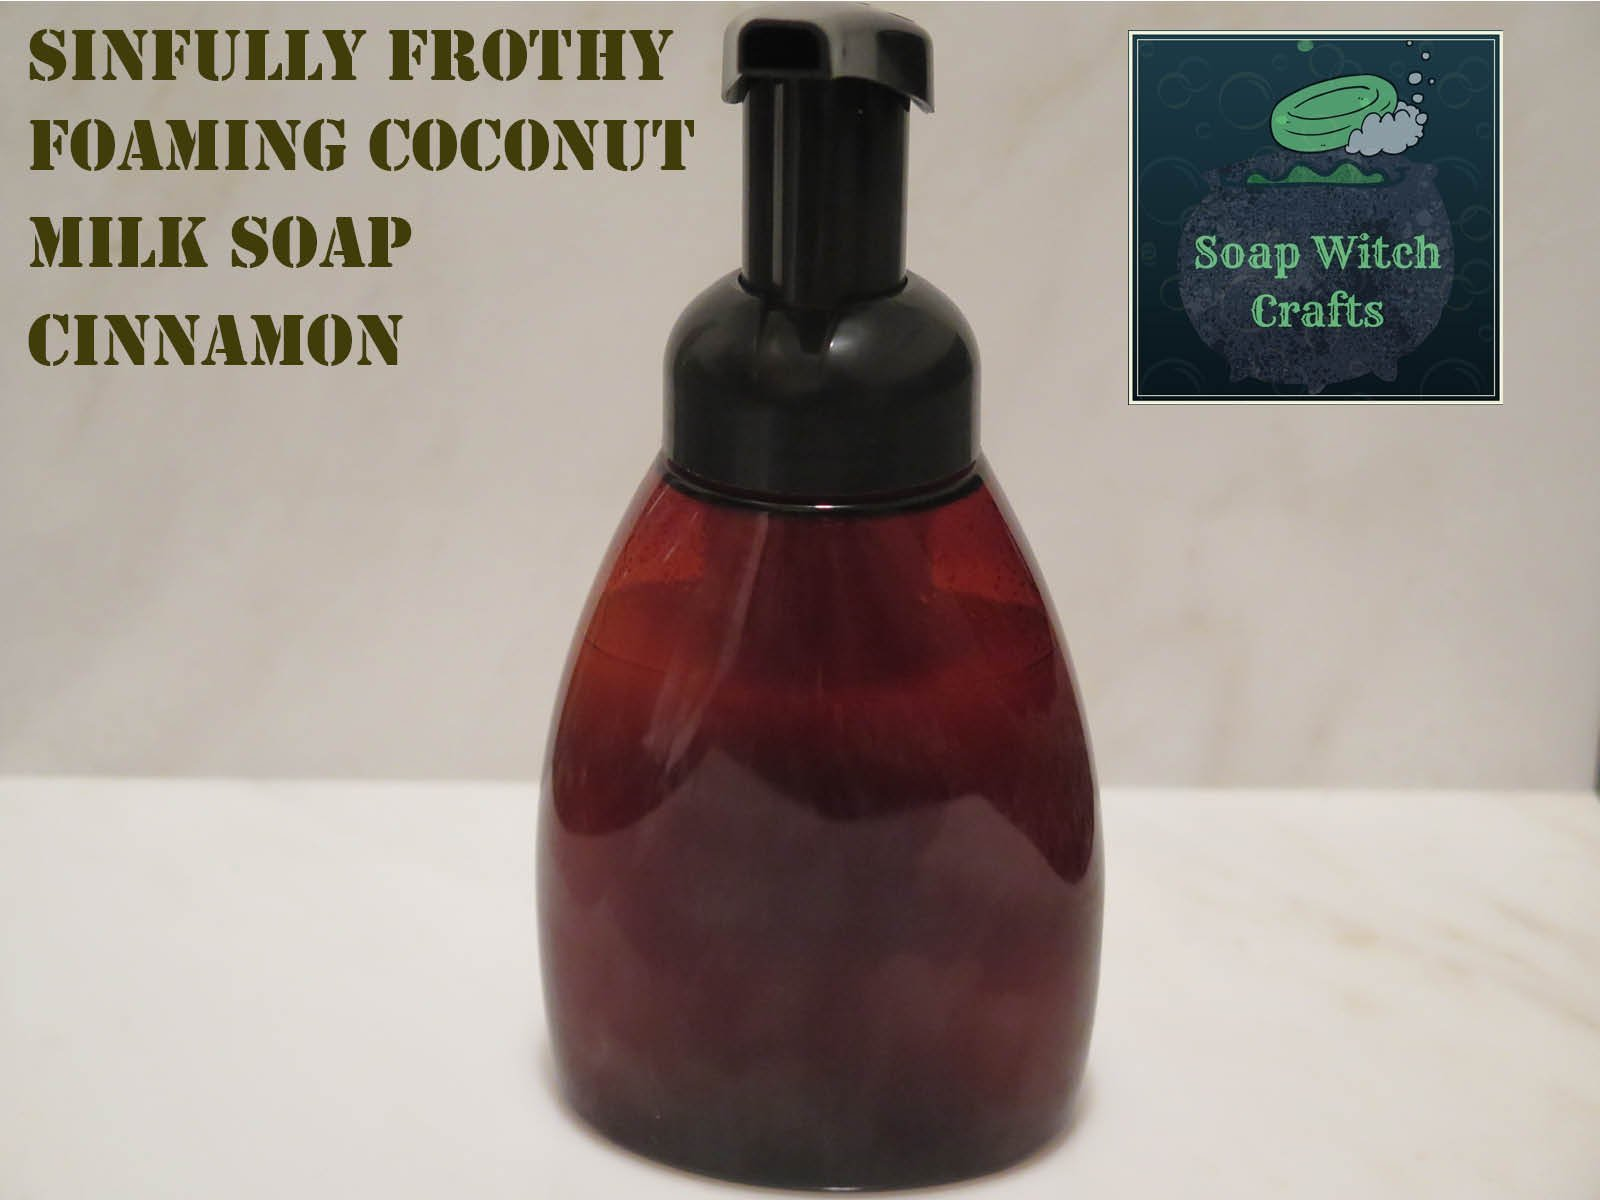 Sinfully Frothy Foaming Coconut Milk Soap - Cinnamon Scented